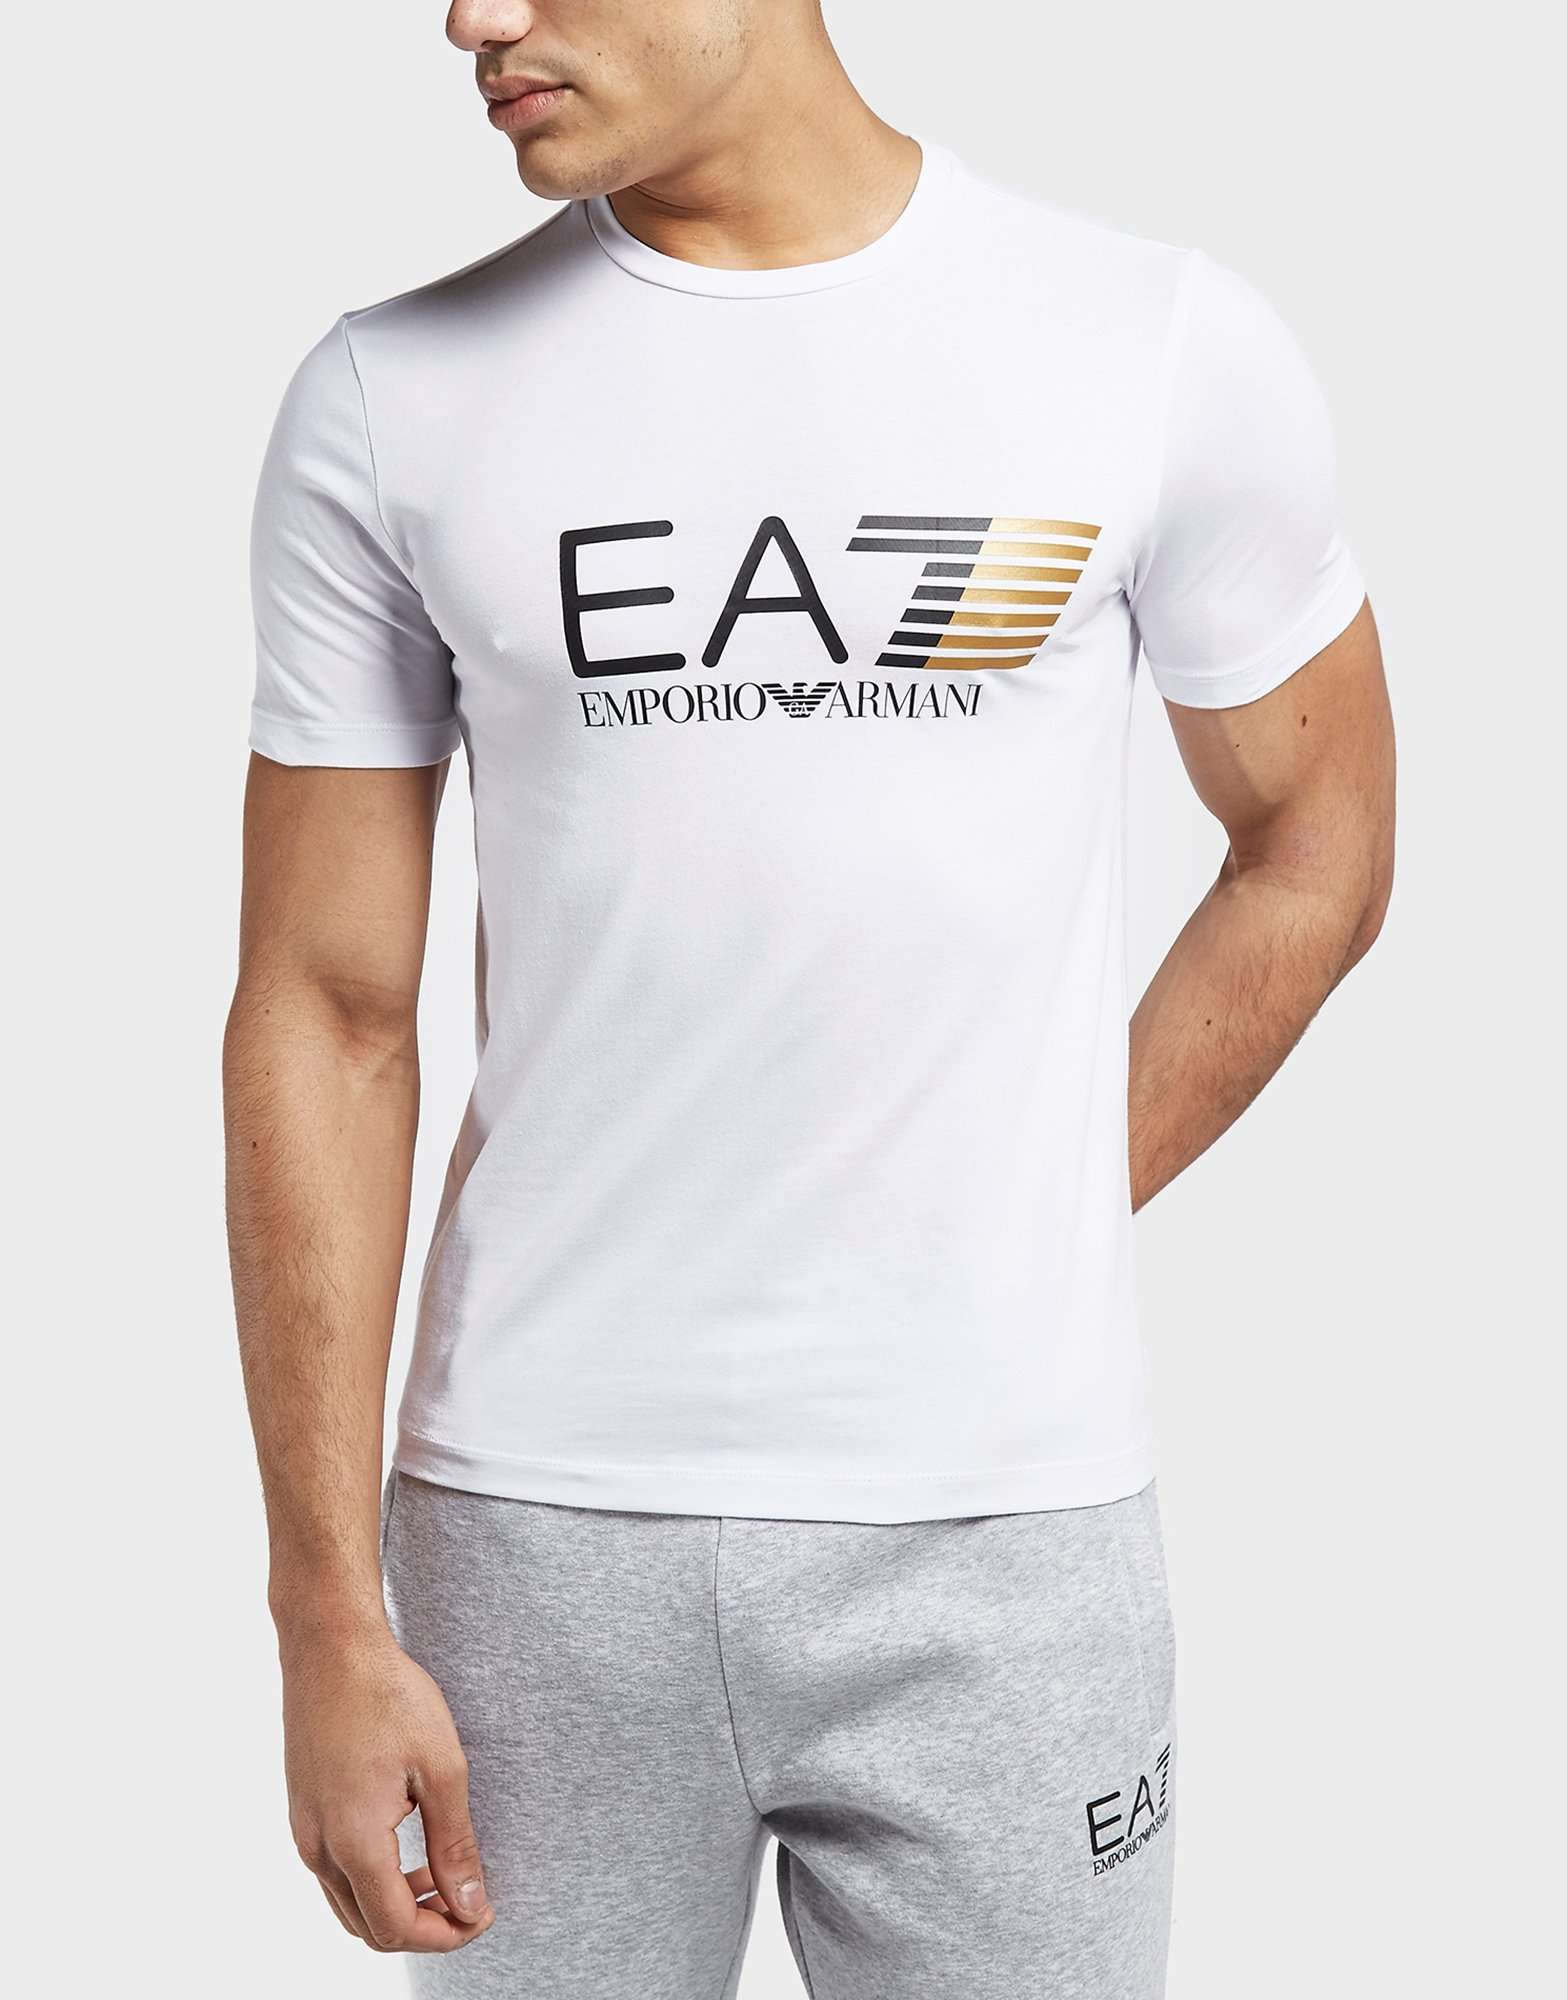 Emporio Armani EA7 Vis Stretch Short Sleeve T-Shirt